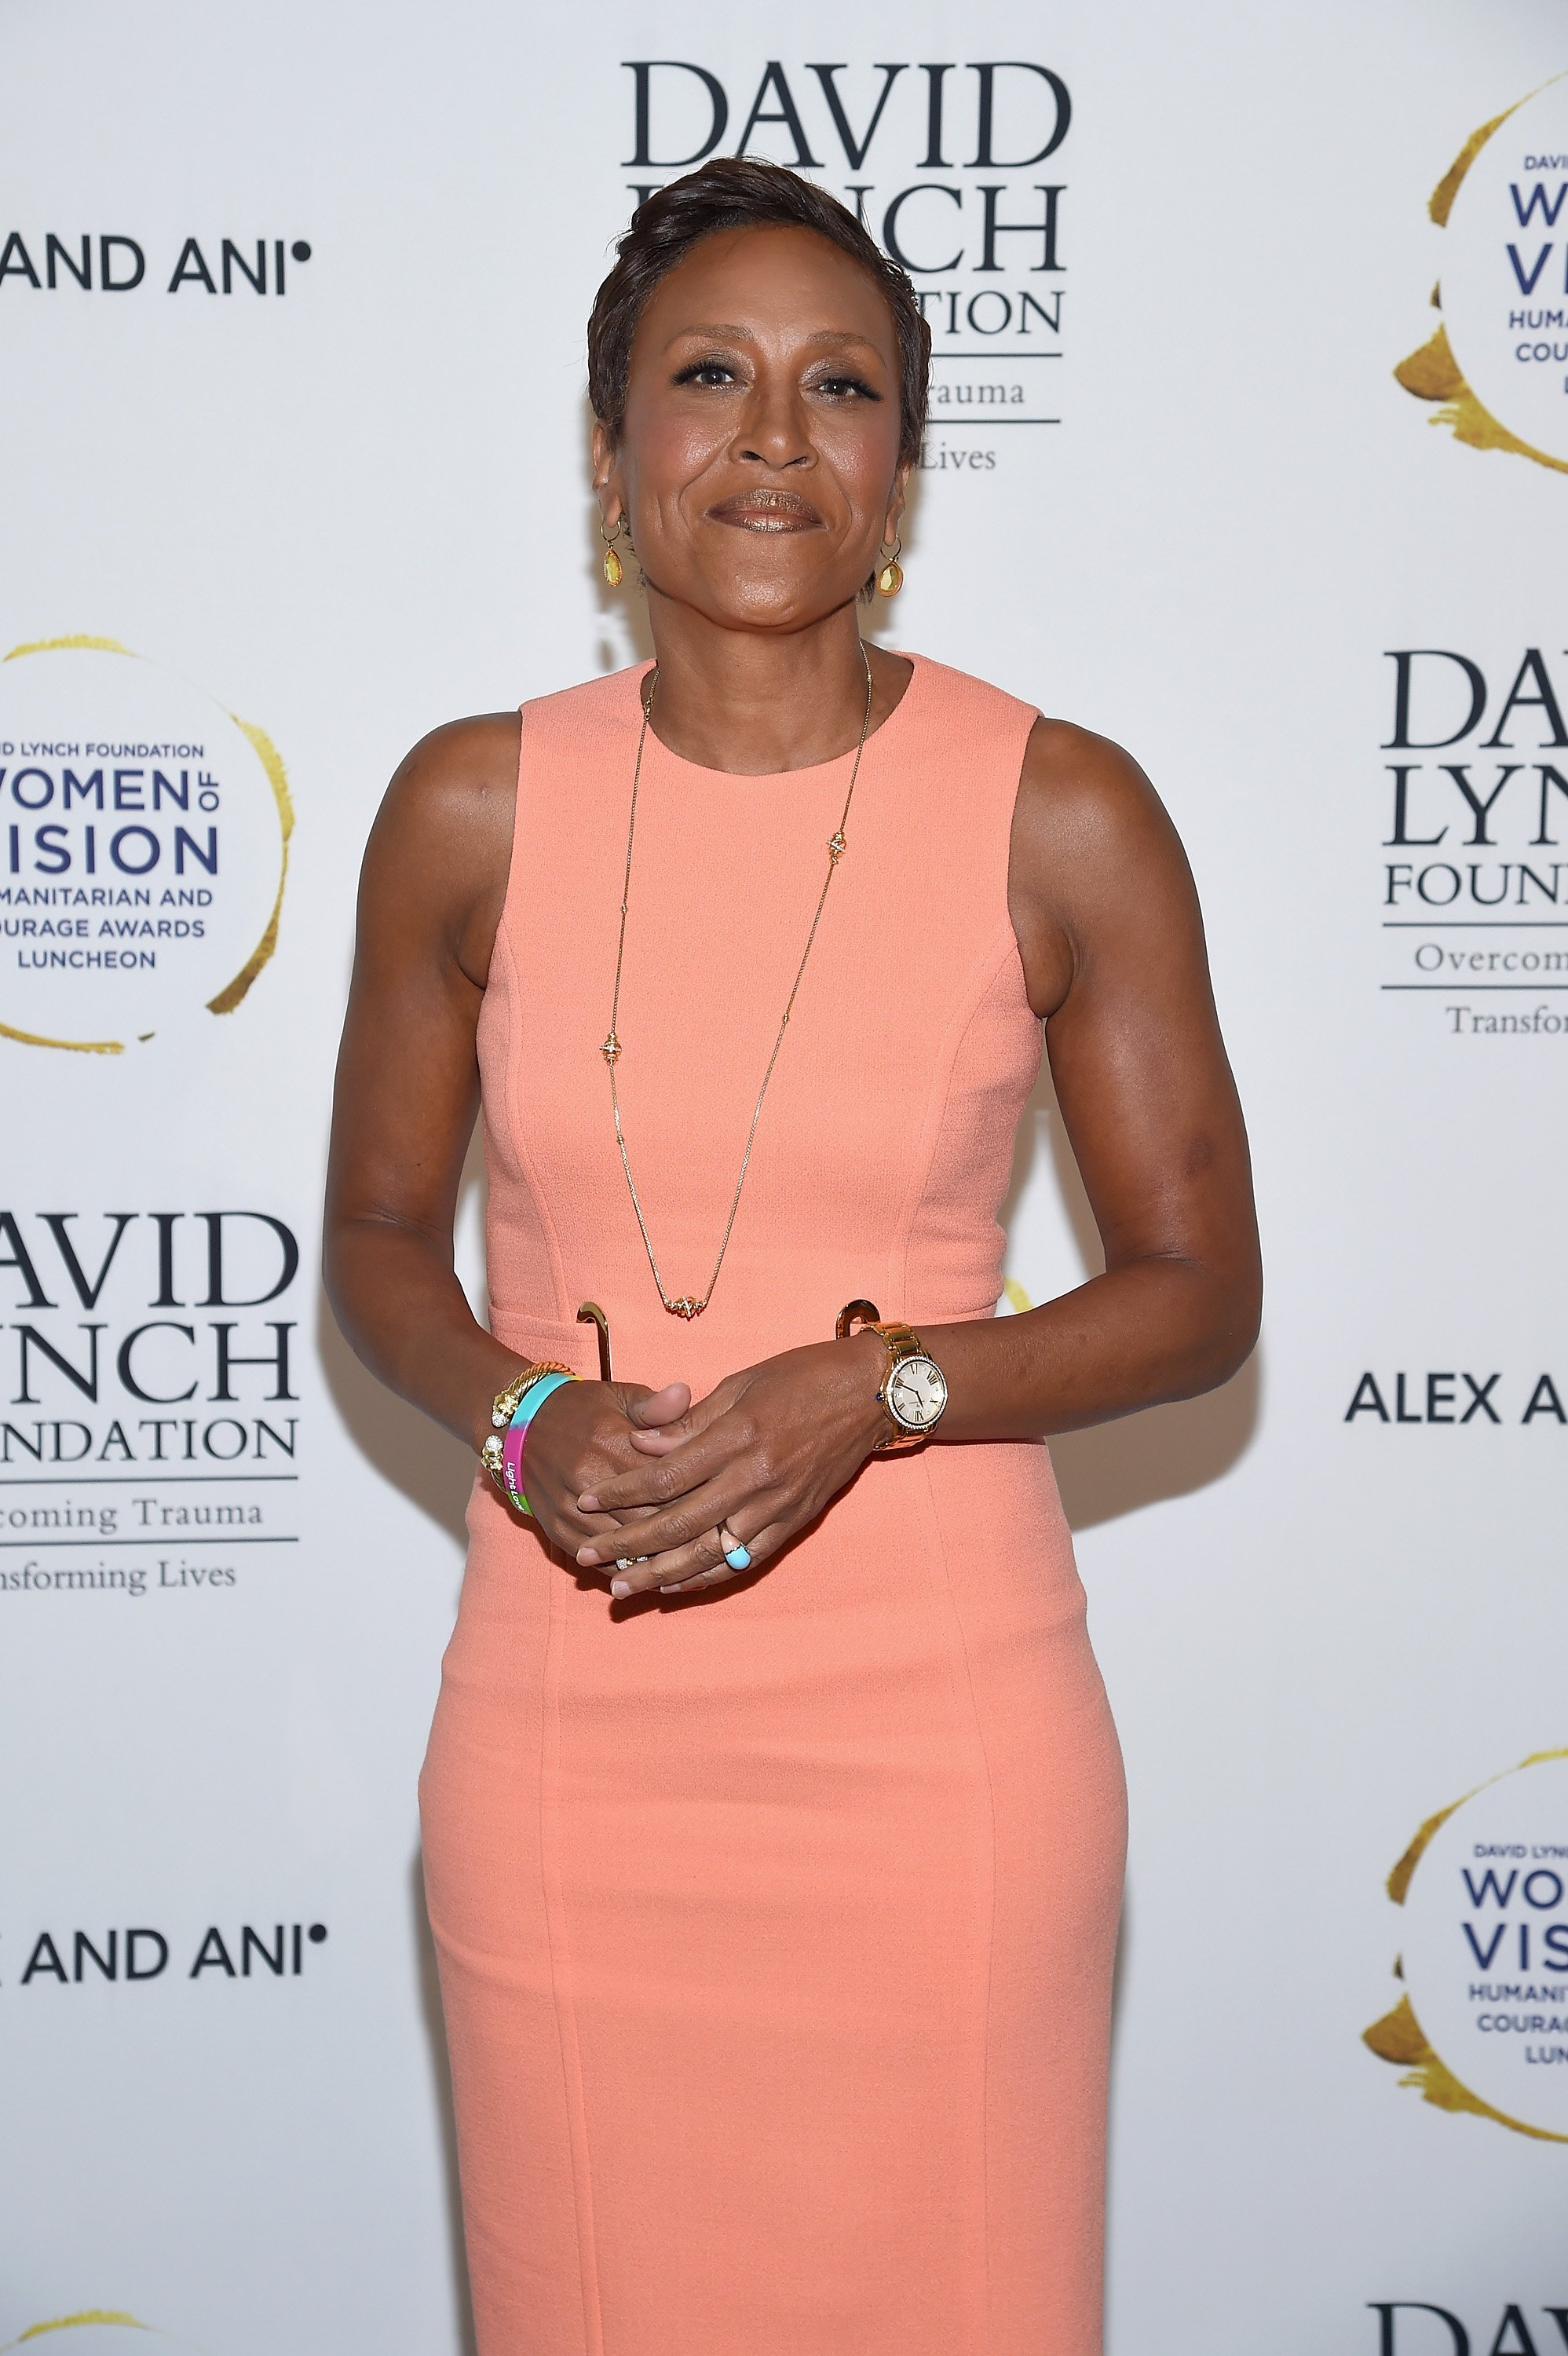 """Robin Roberts at the David Lynch Foundation's """"Women of Vision Awards"""" in May 2017.   Photo: Getty Images"""